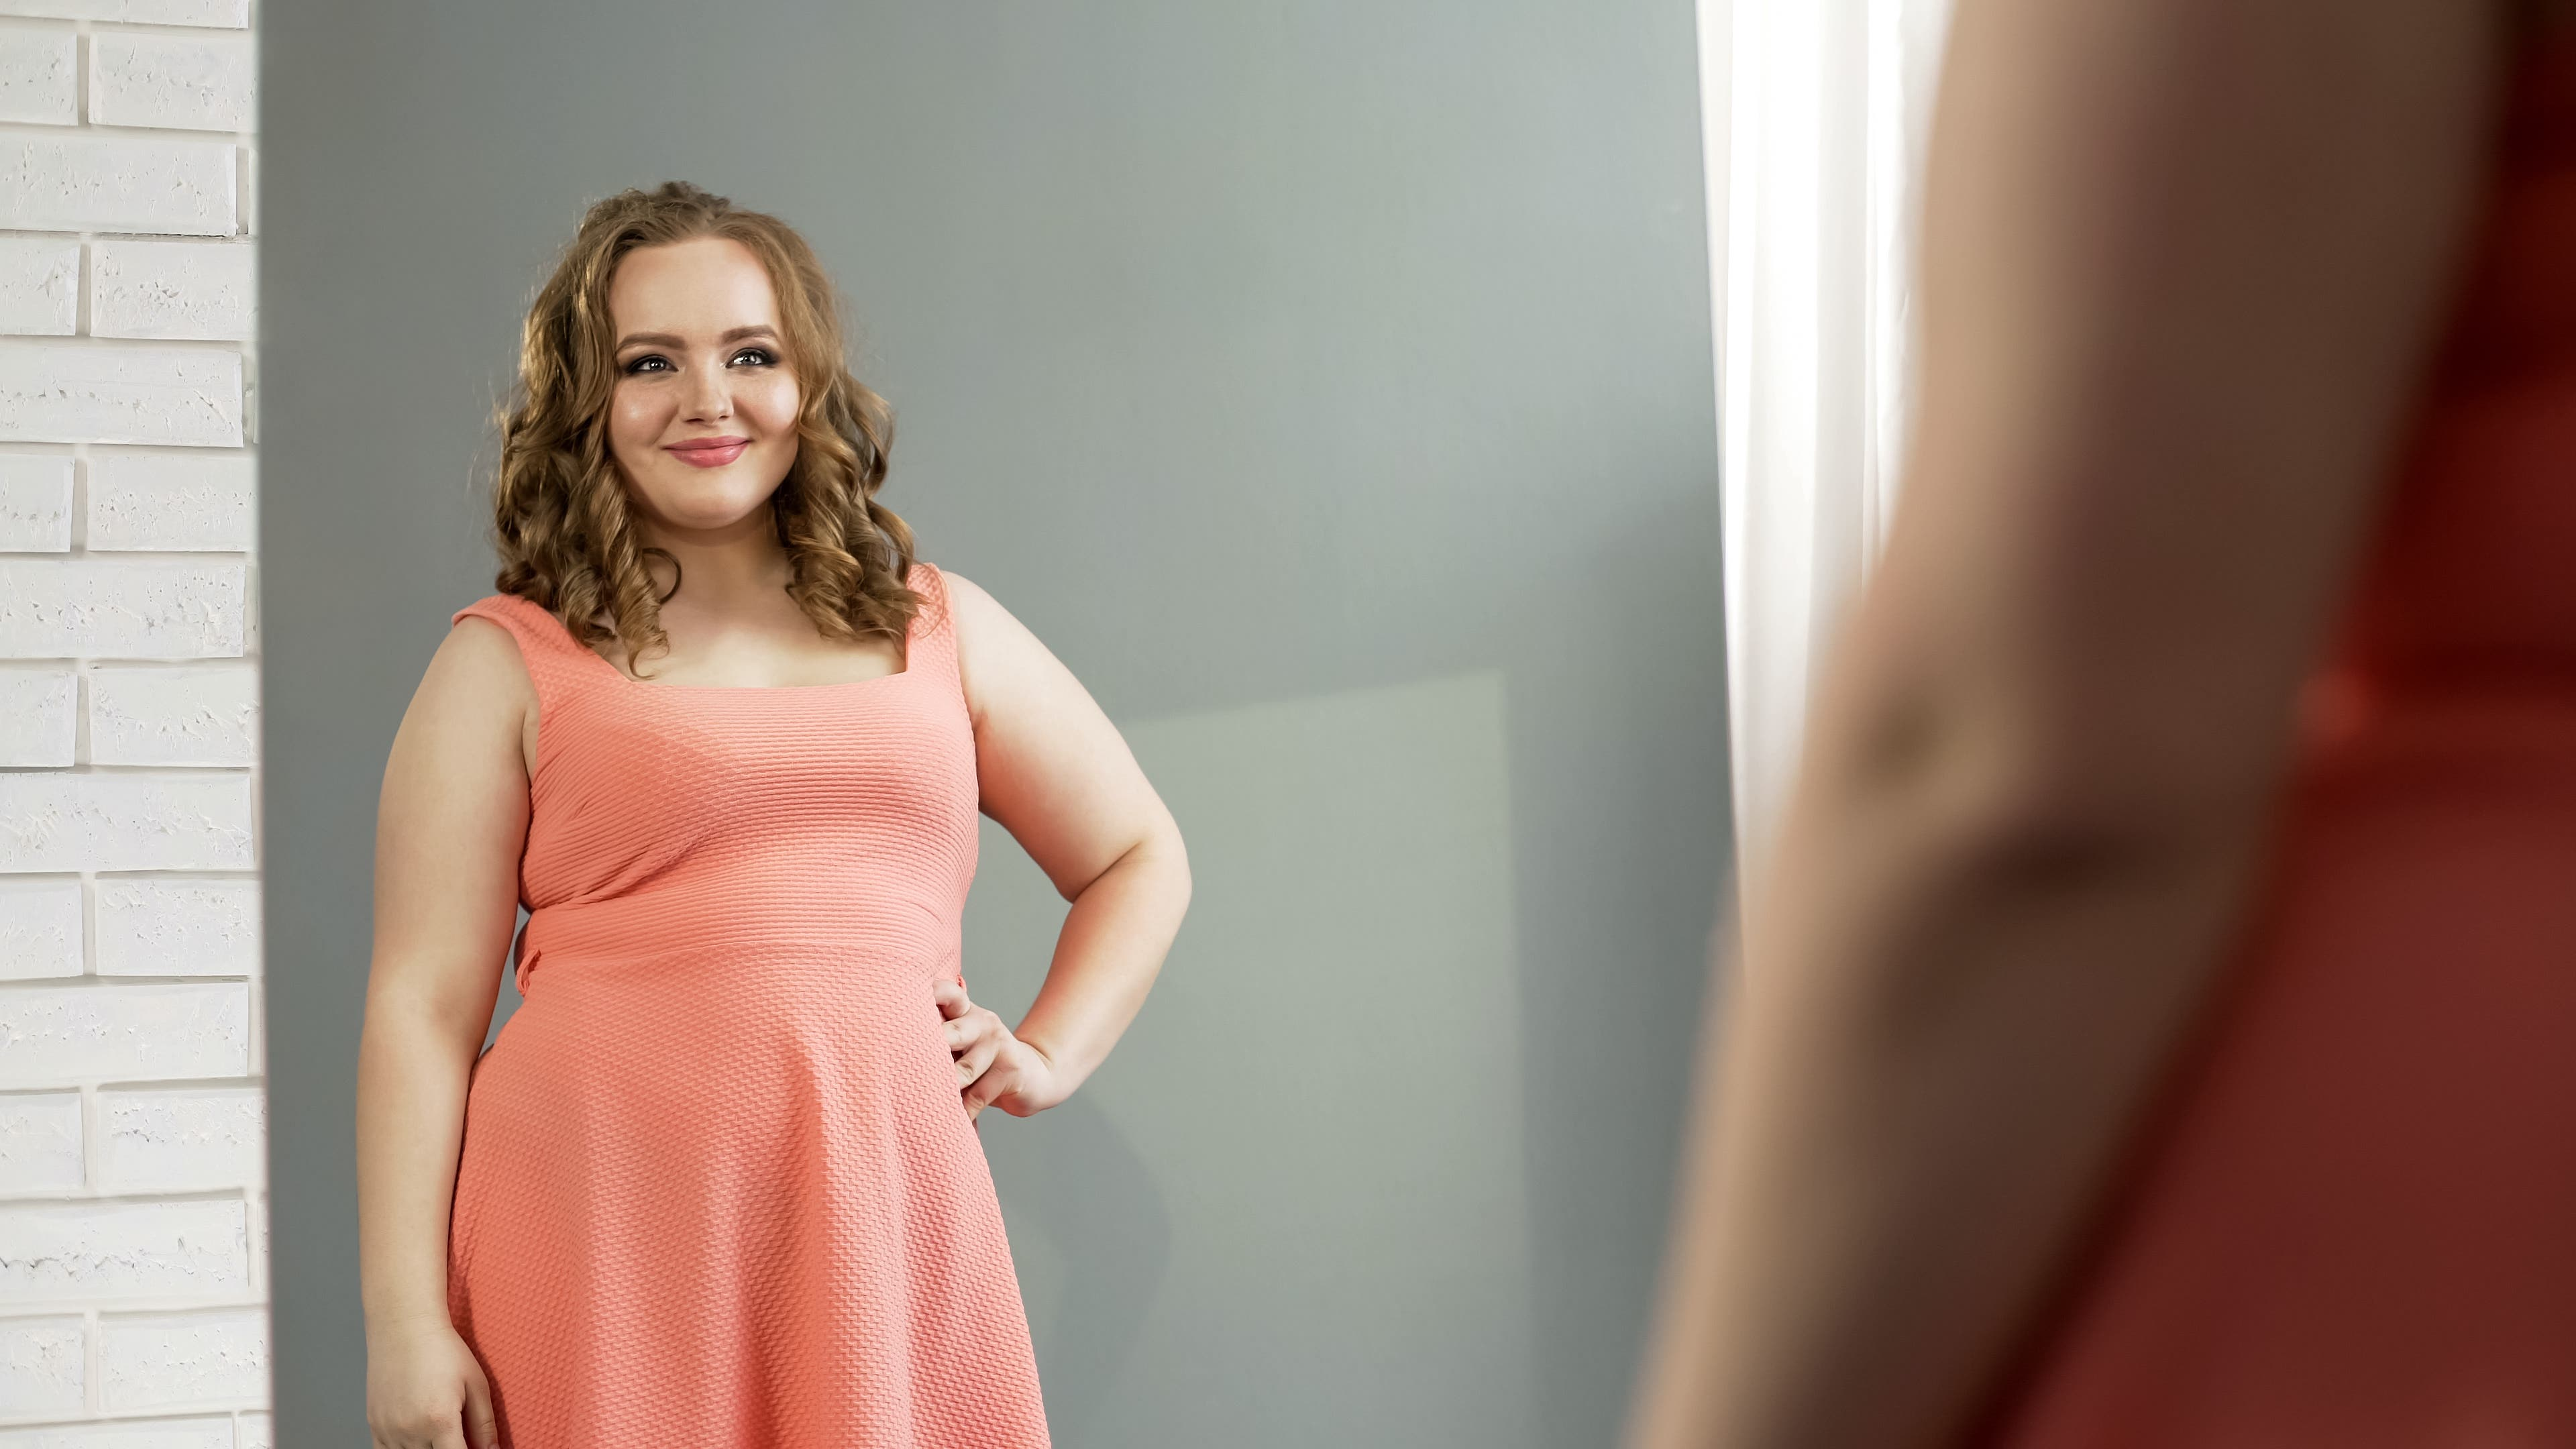 Confident woman looking in the mirror. Lost weight, feels confident, and loves herself.